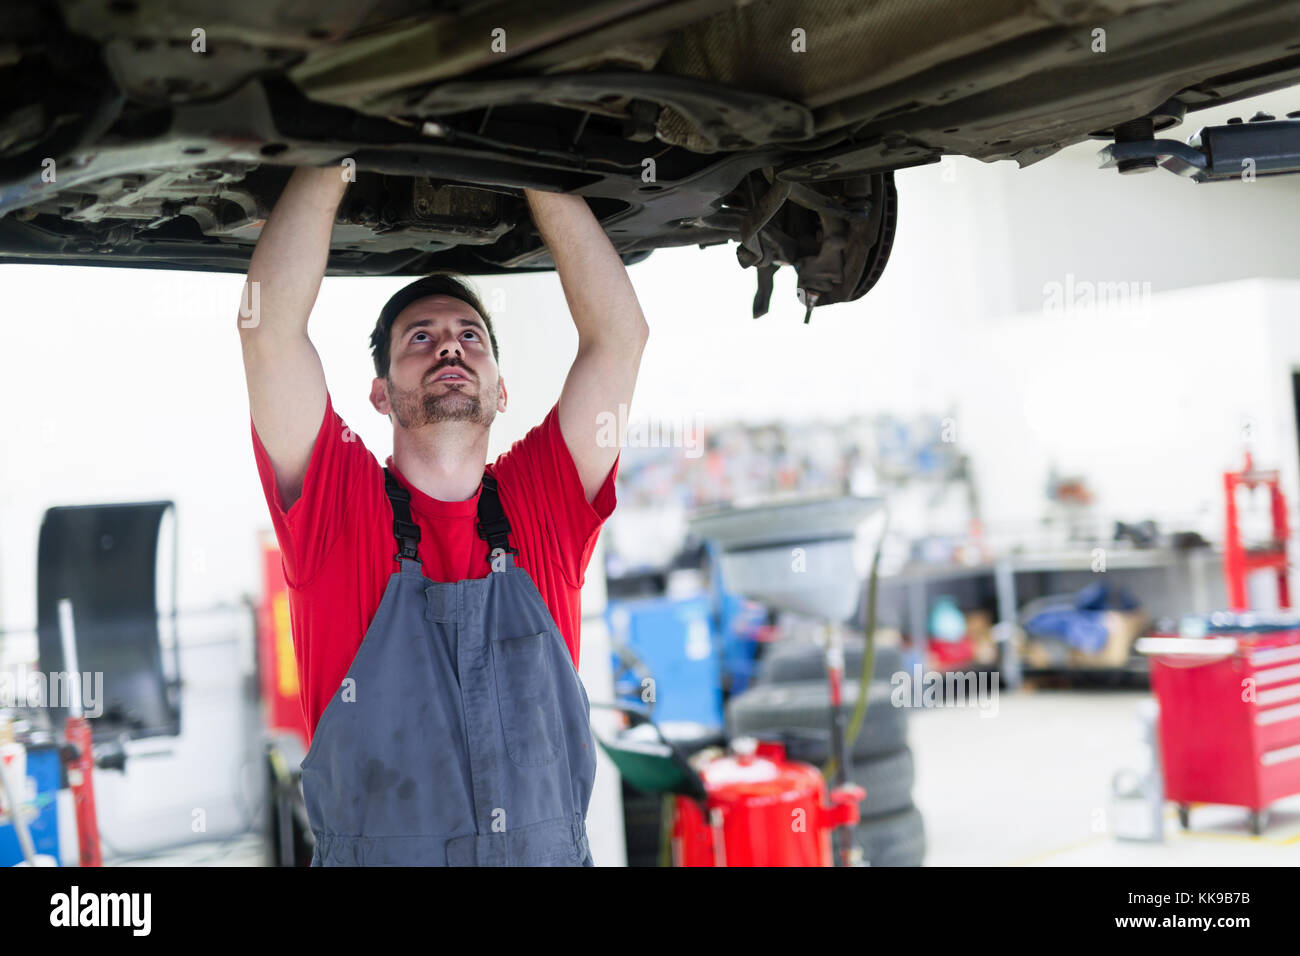 Car mechanic working at automotive service center - Stock Image